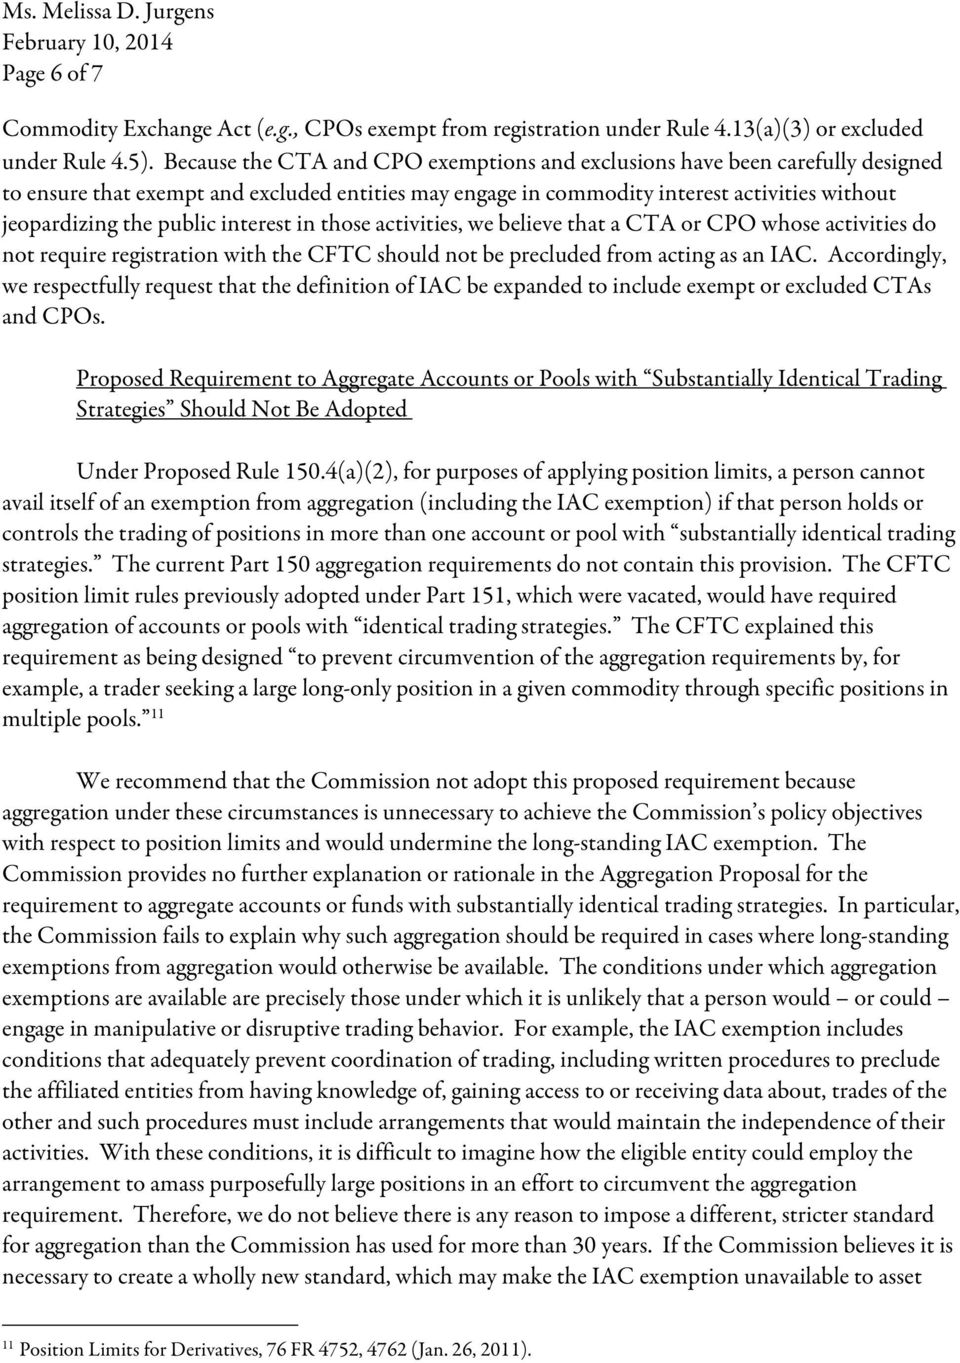 interest in those activities, we believe that a CTA or CPO whose activities do not require registration with the CFTC should not be precluded from acting as an IAC.